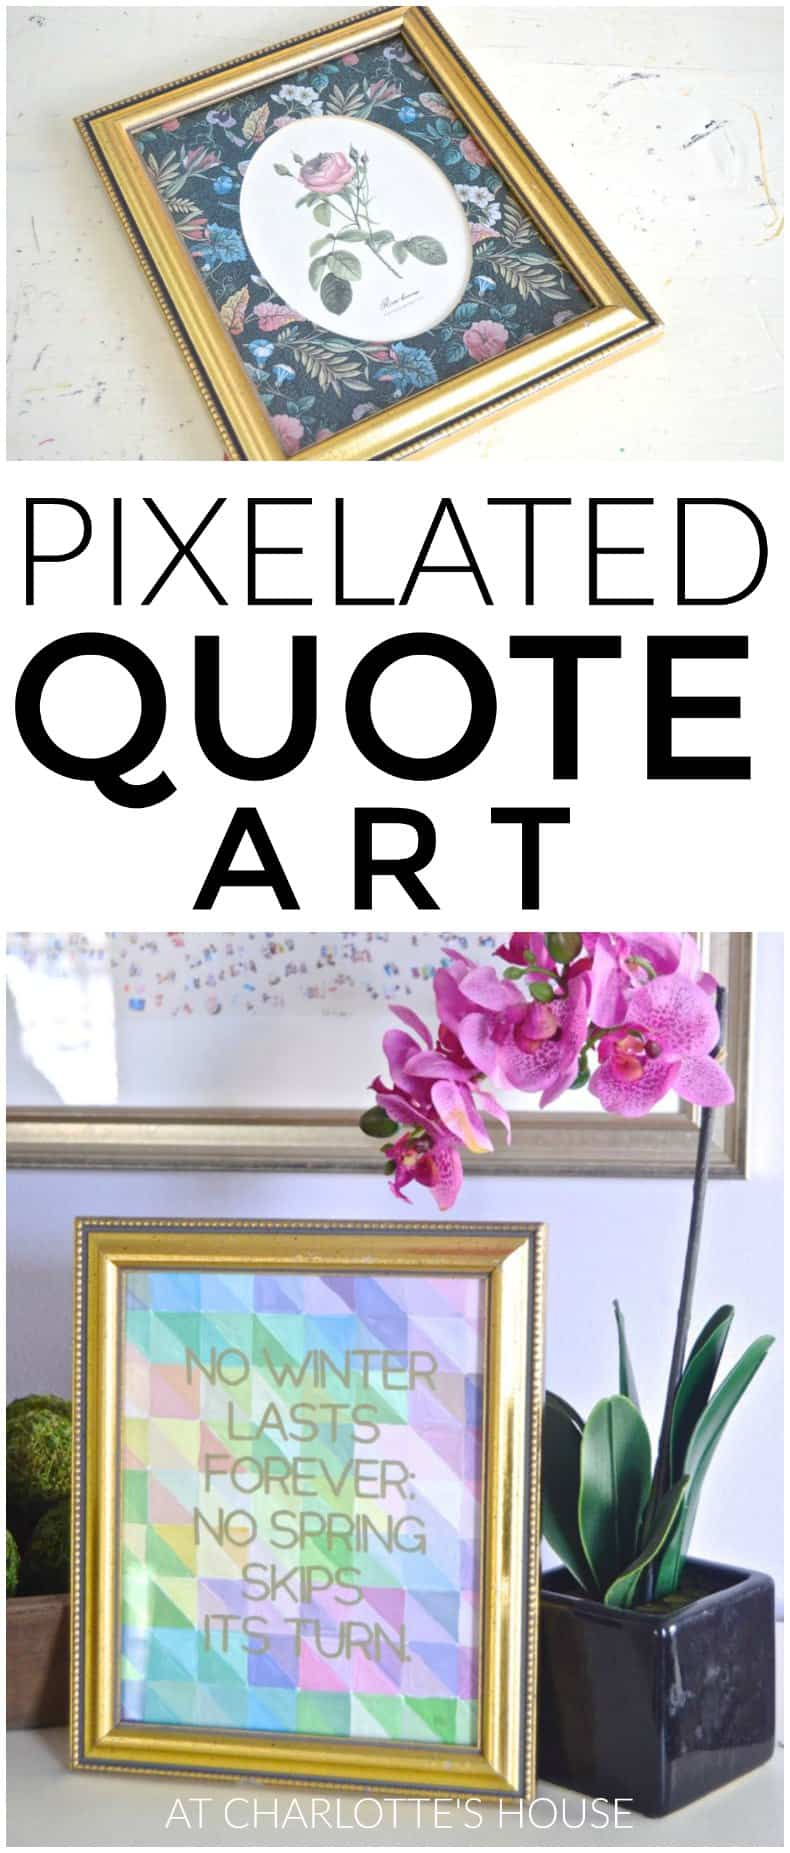 Easy and colorful pixelated quote artwork.